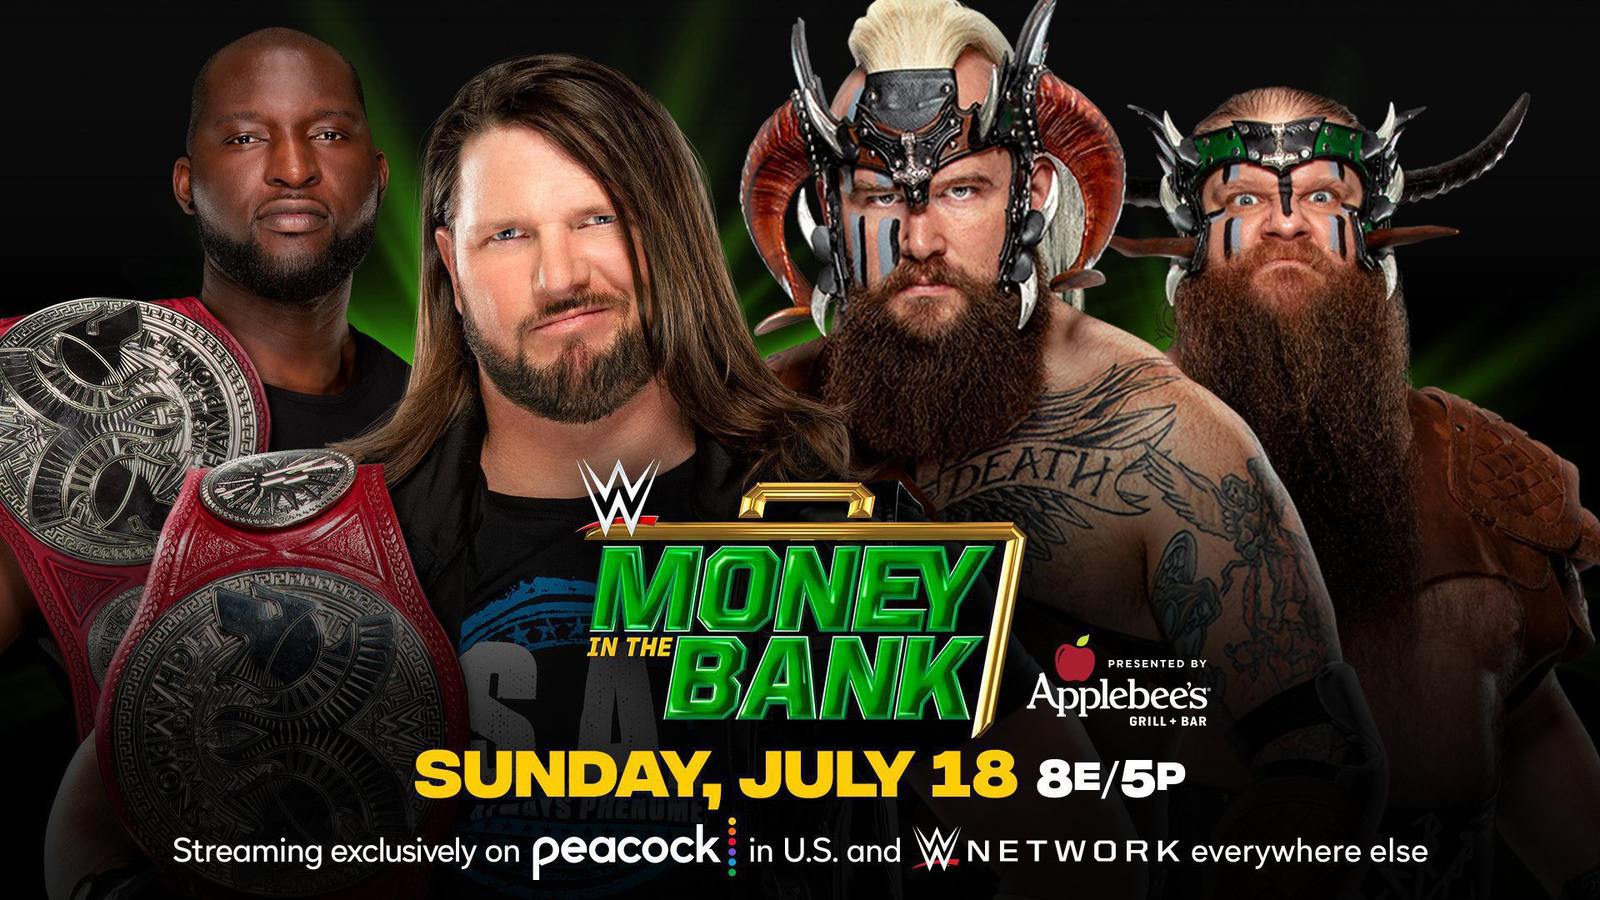 Money In The Bank 2021: WWE Announces New Title Match And Ladder Match Participant 2